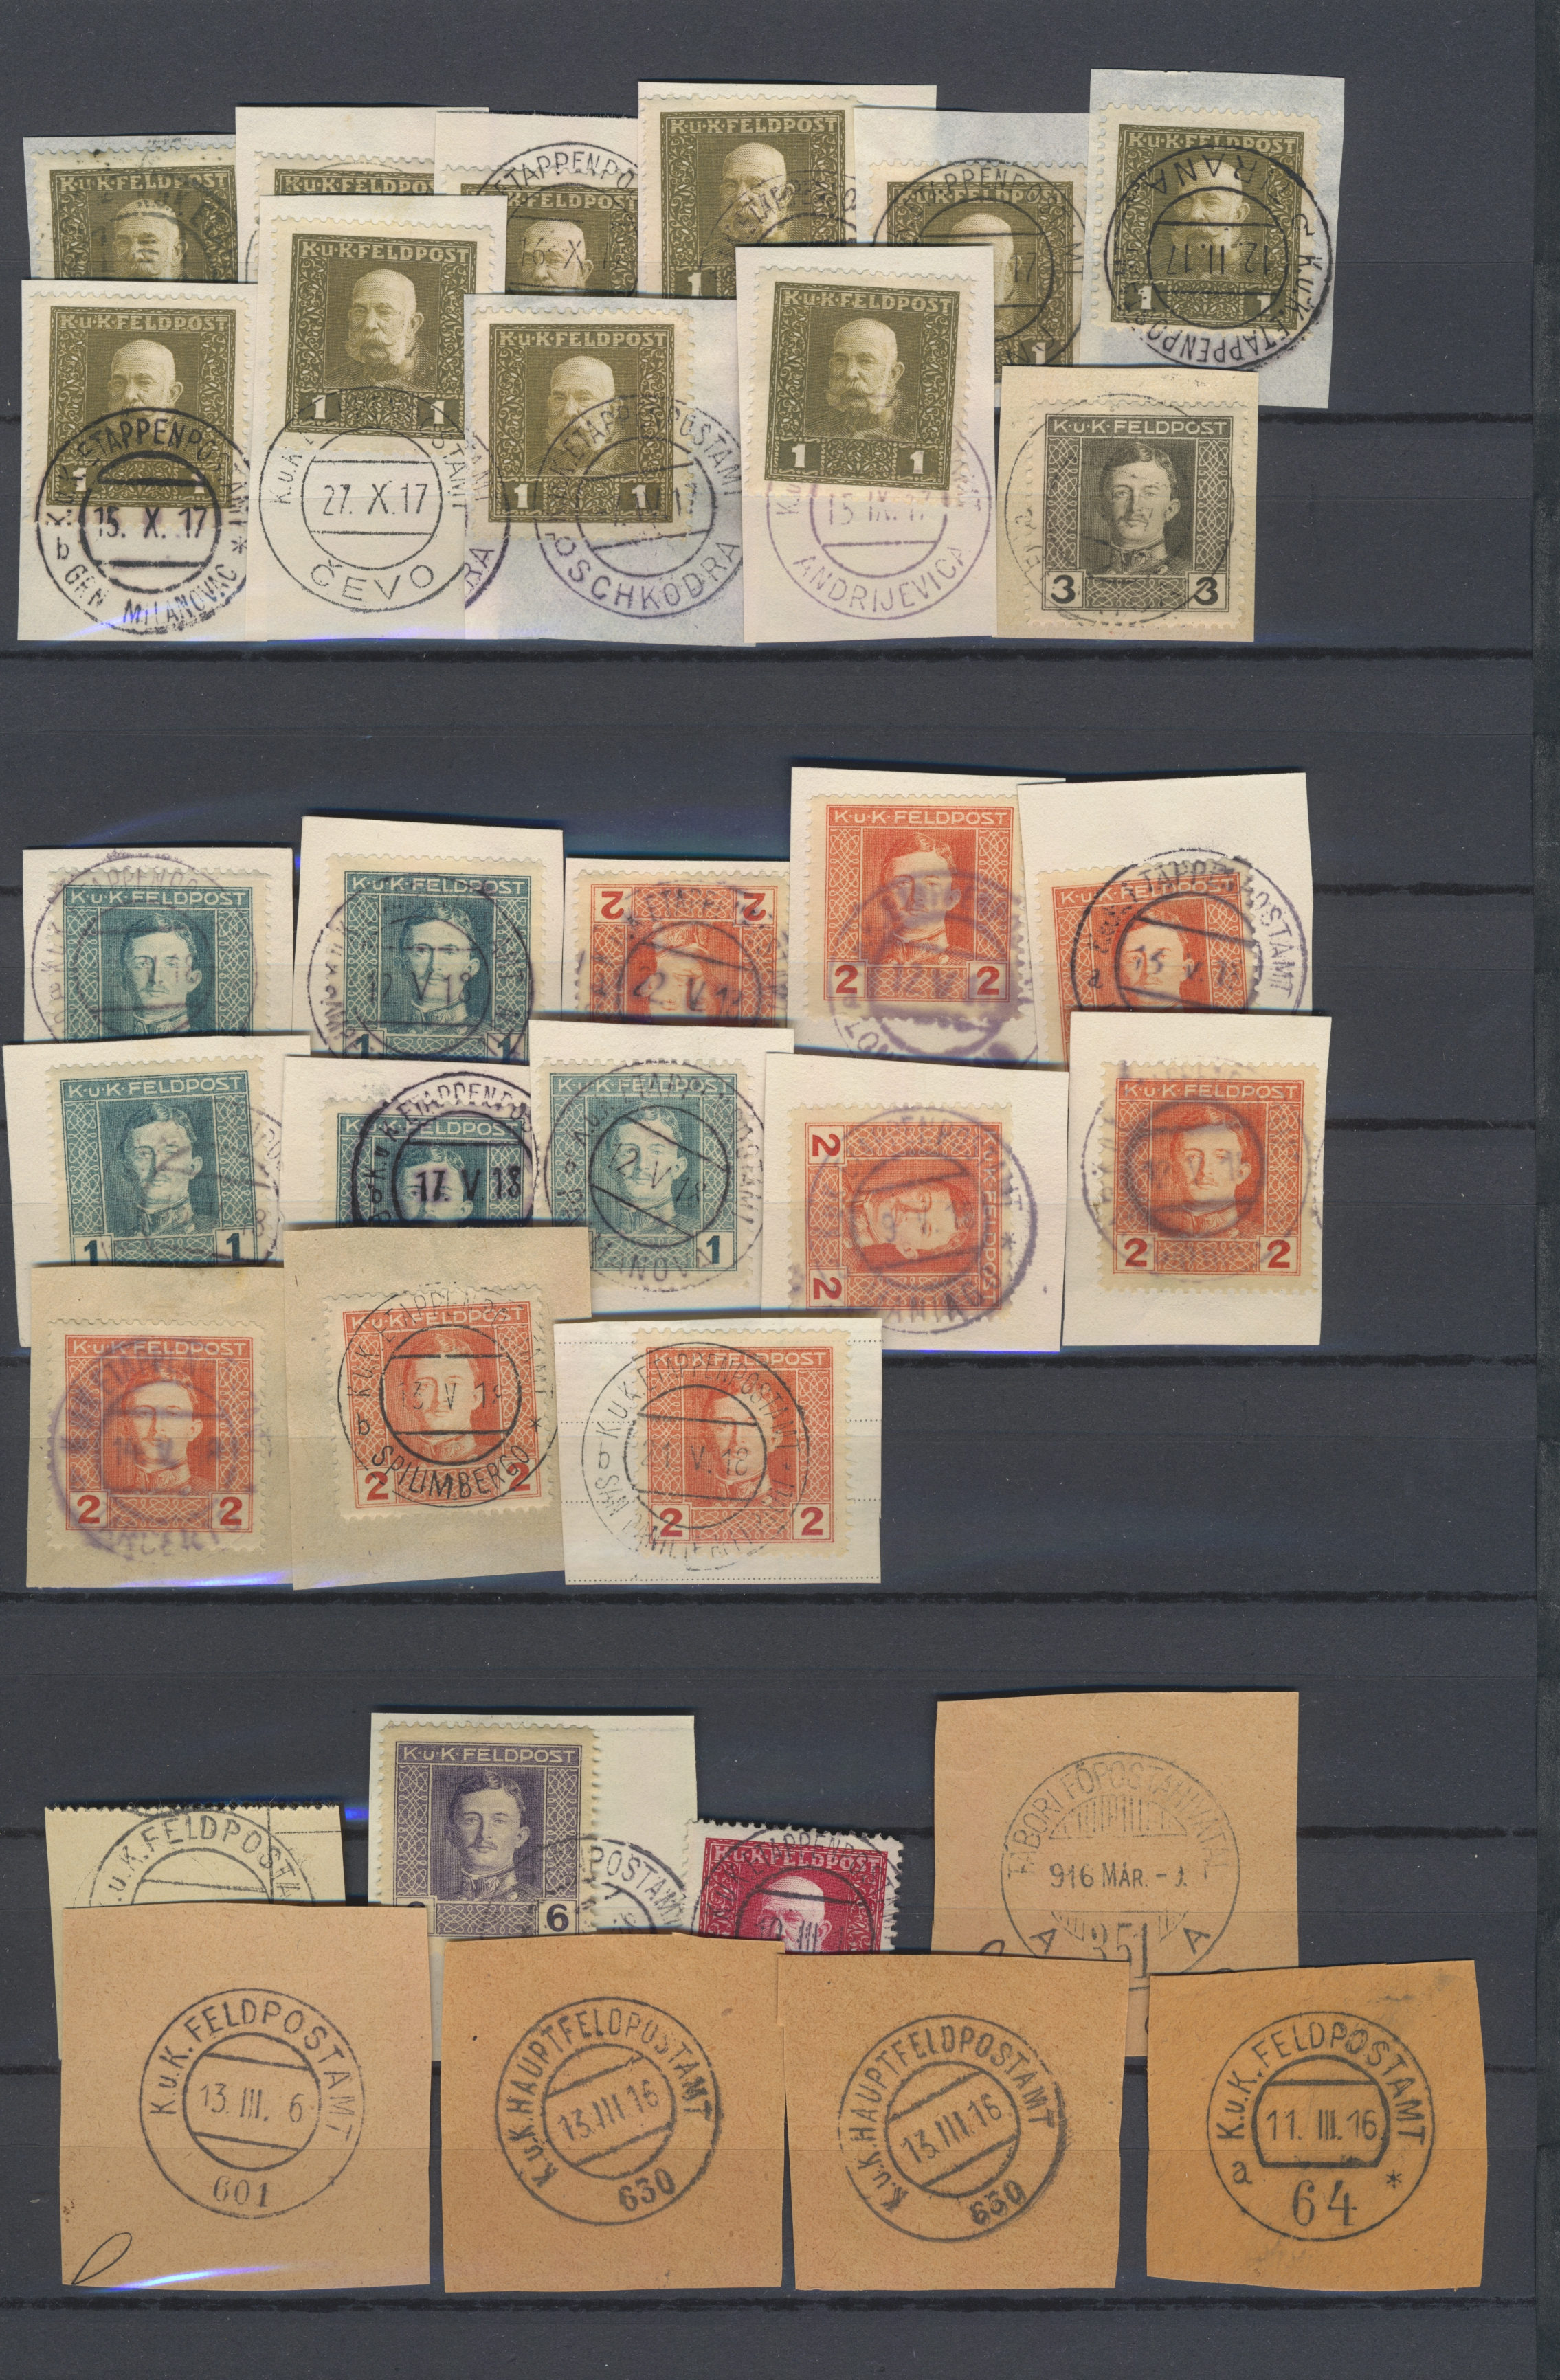 Lot 18353 - Österreichisch-Ungarische Feldpost - Allgemeine Ausgabe  -  Auktionshaus Christoph Gärtner GmbH & Co. KG Sale #48 collections Overseas  Airmail / Ship mail & Thematics